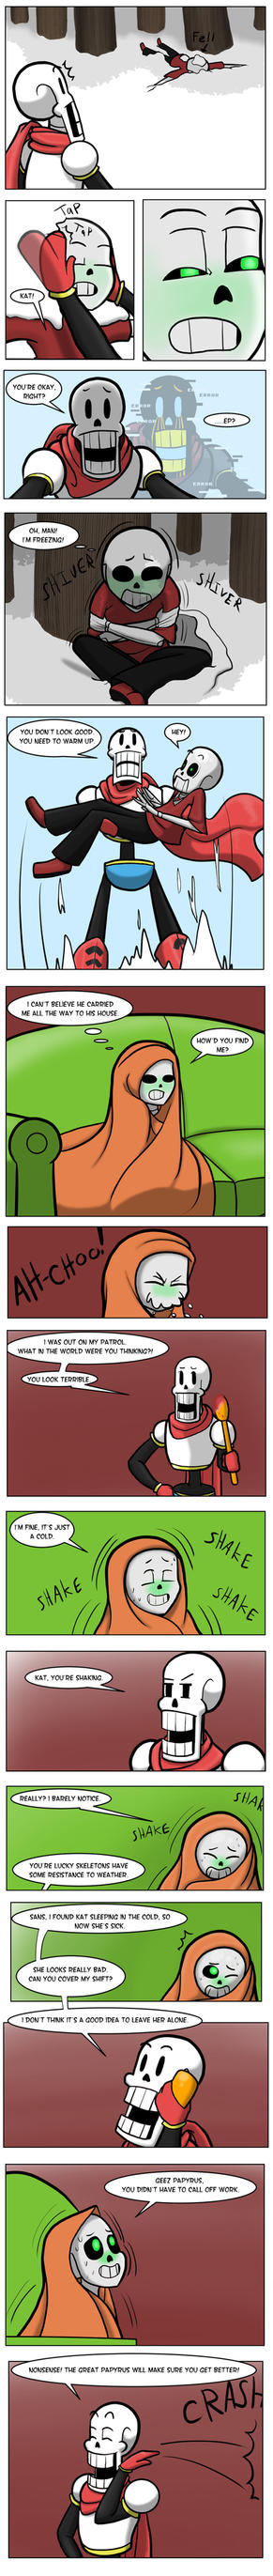 undertale green Chapter 3 Page 22 by FlamingReaperComic